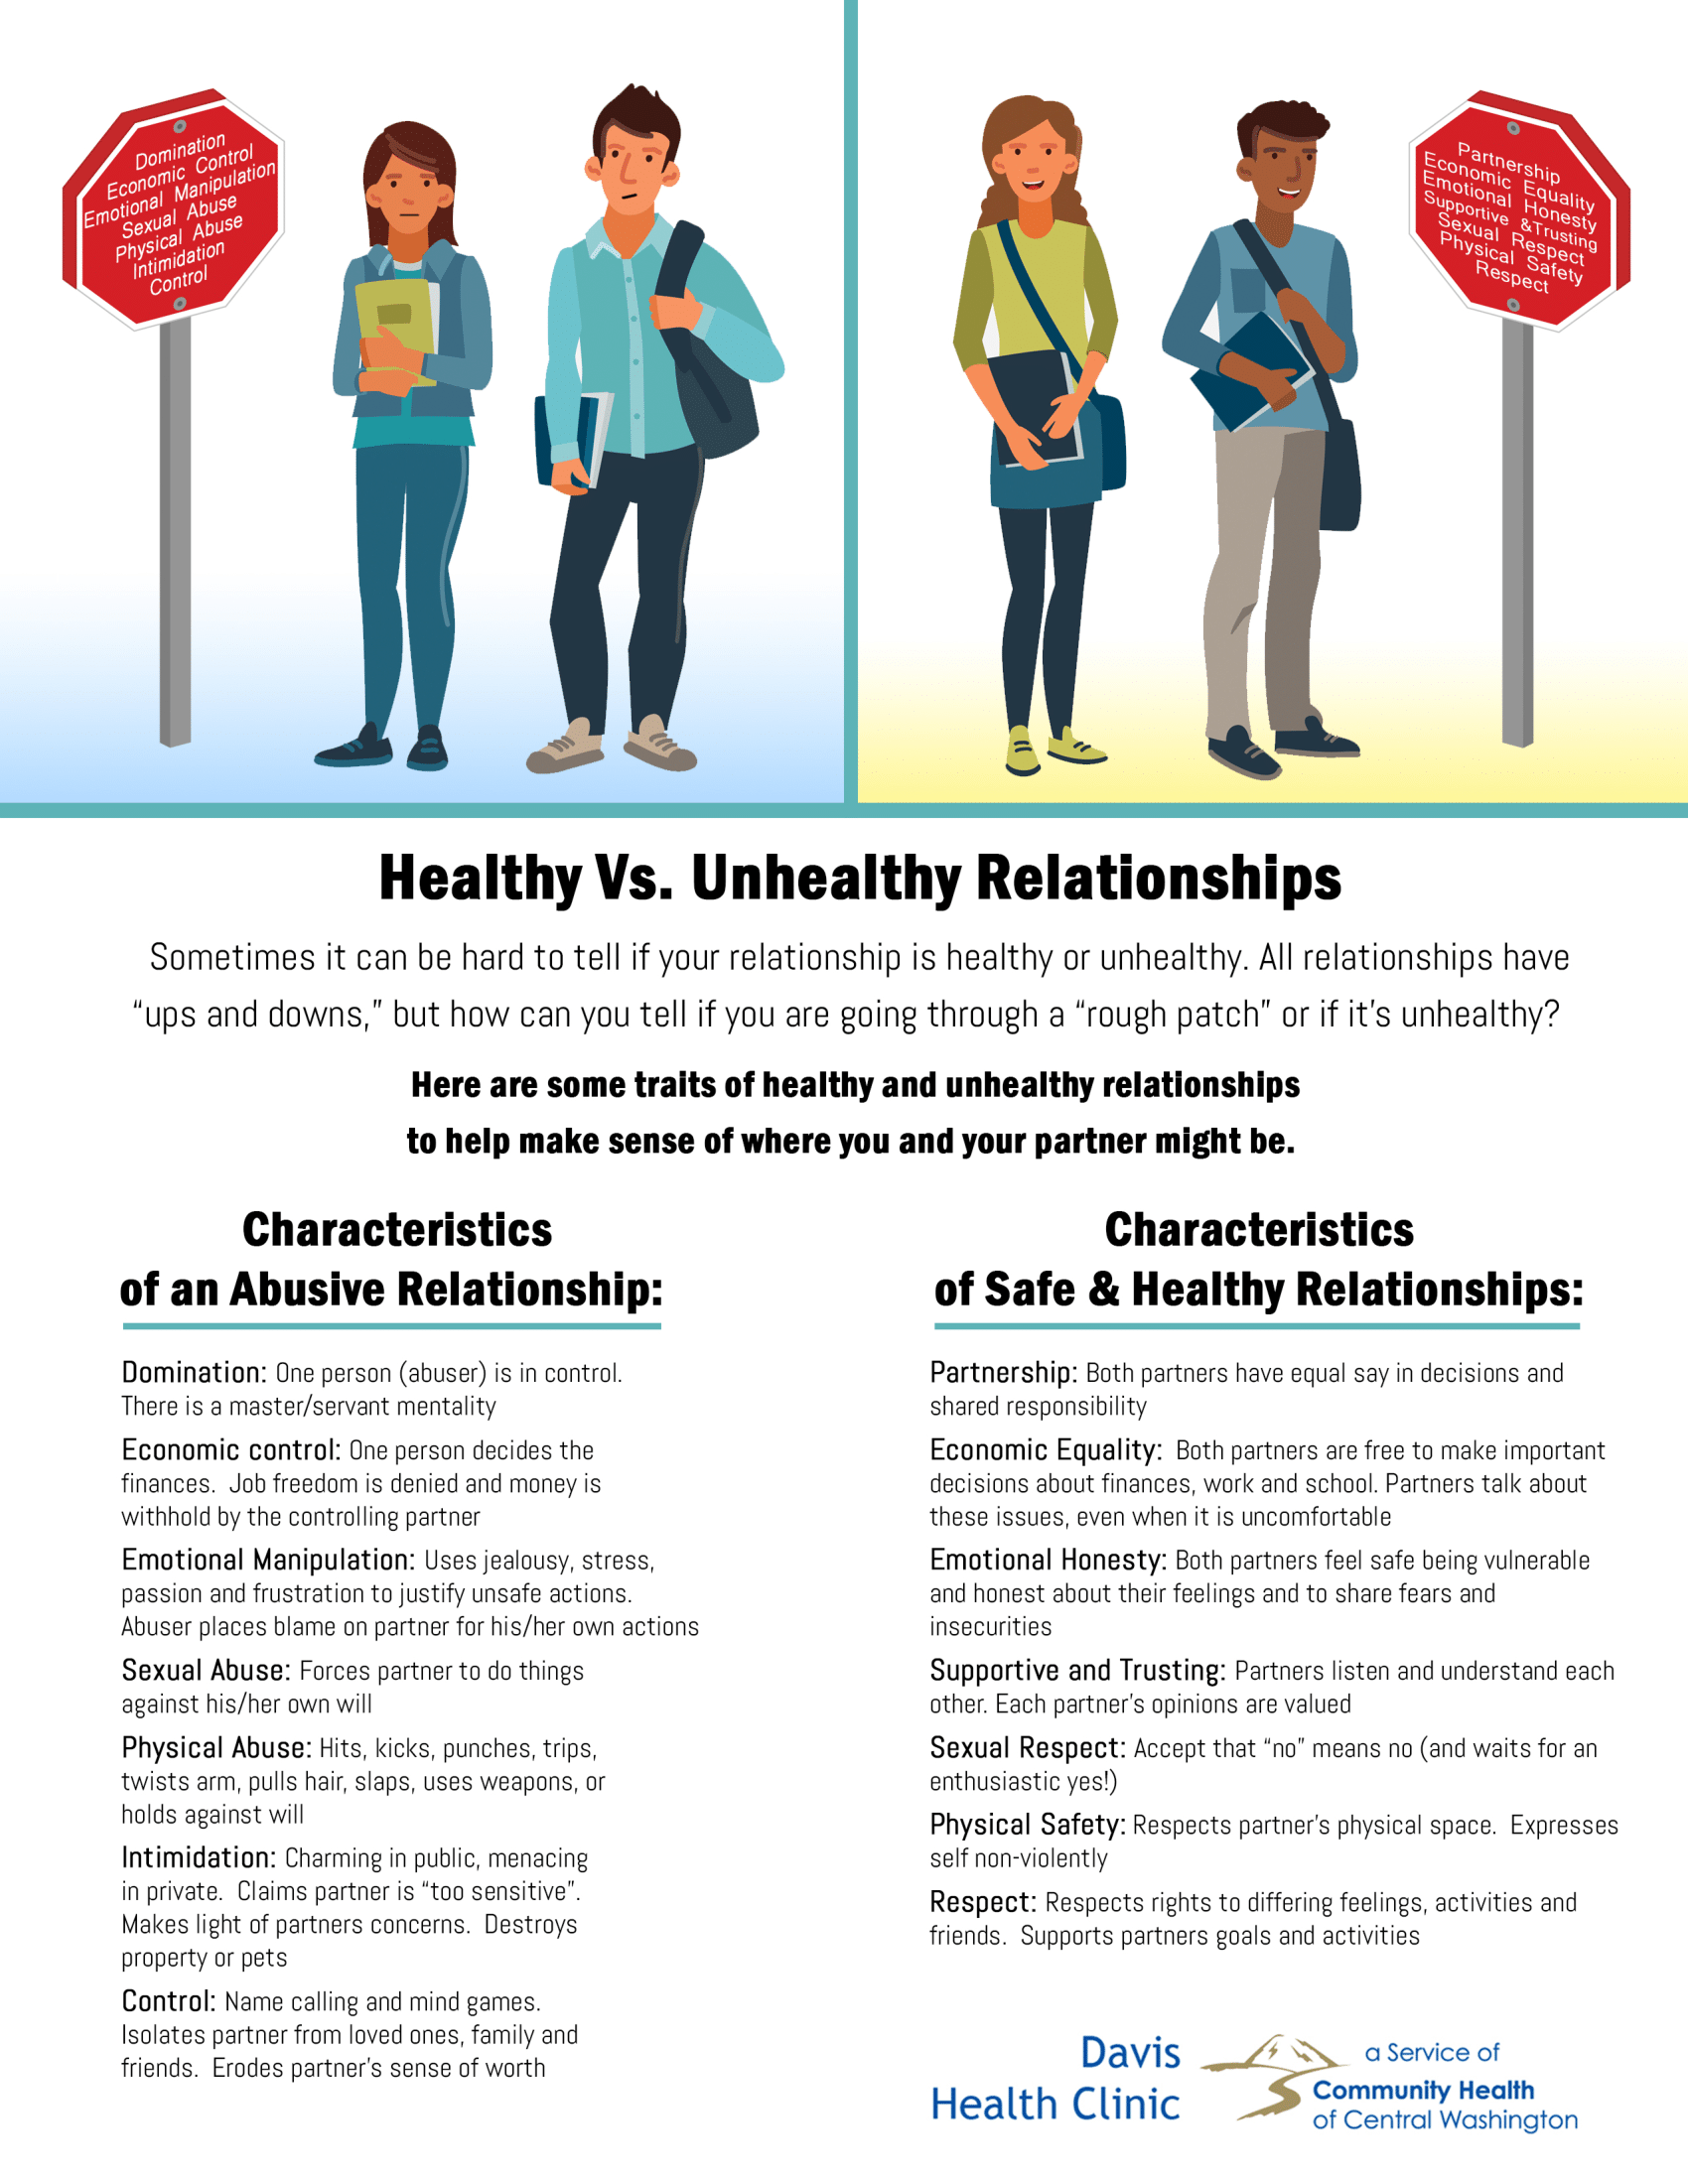 Qualities of an unhealthy relationship